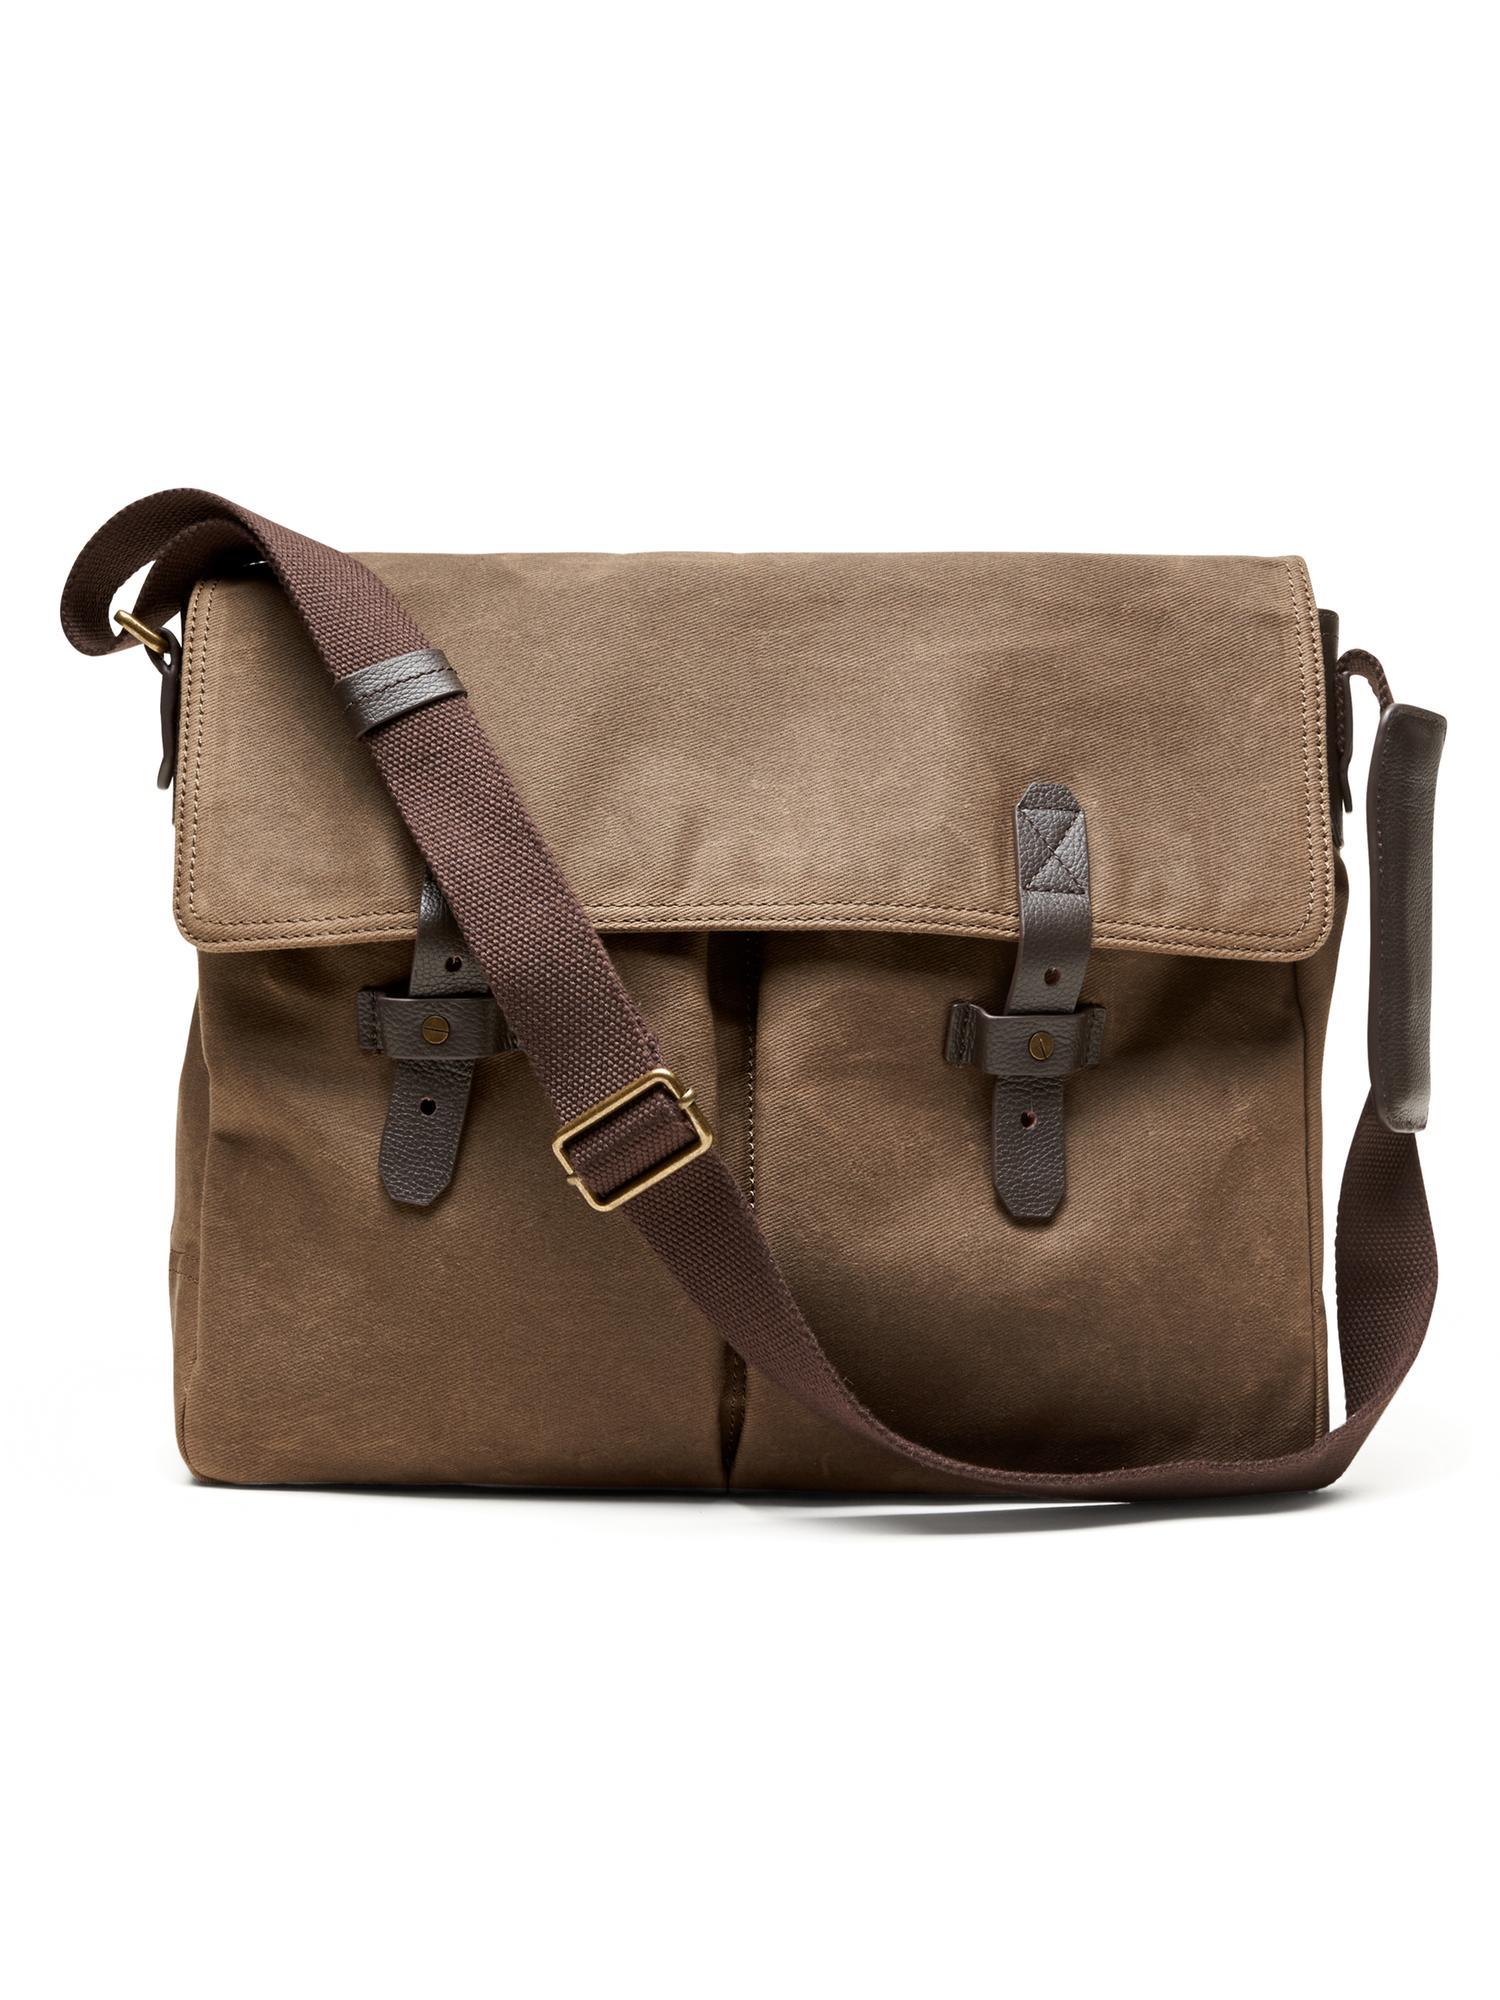 261819c33a1a Lyst - Banana Republic Rugged Canvas Messenger Bag in Natural for Men